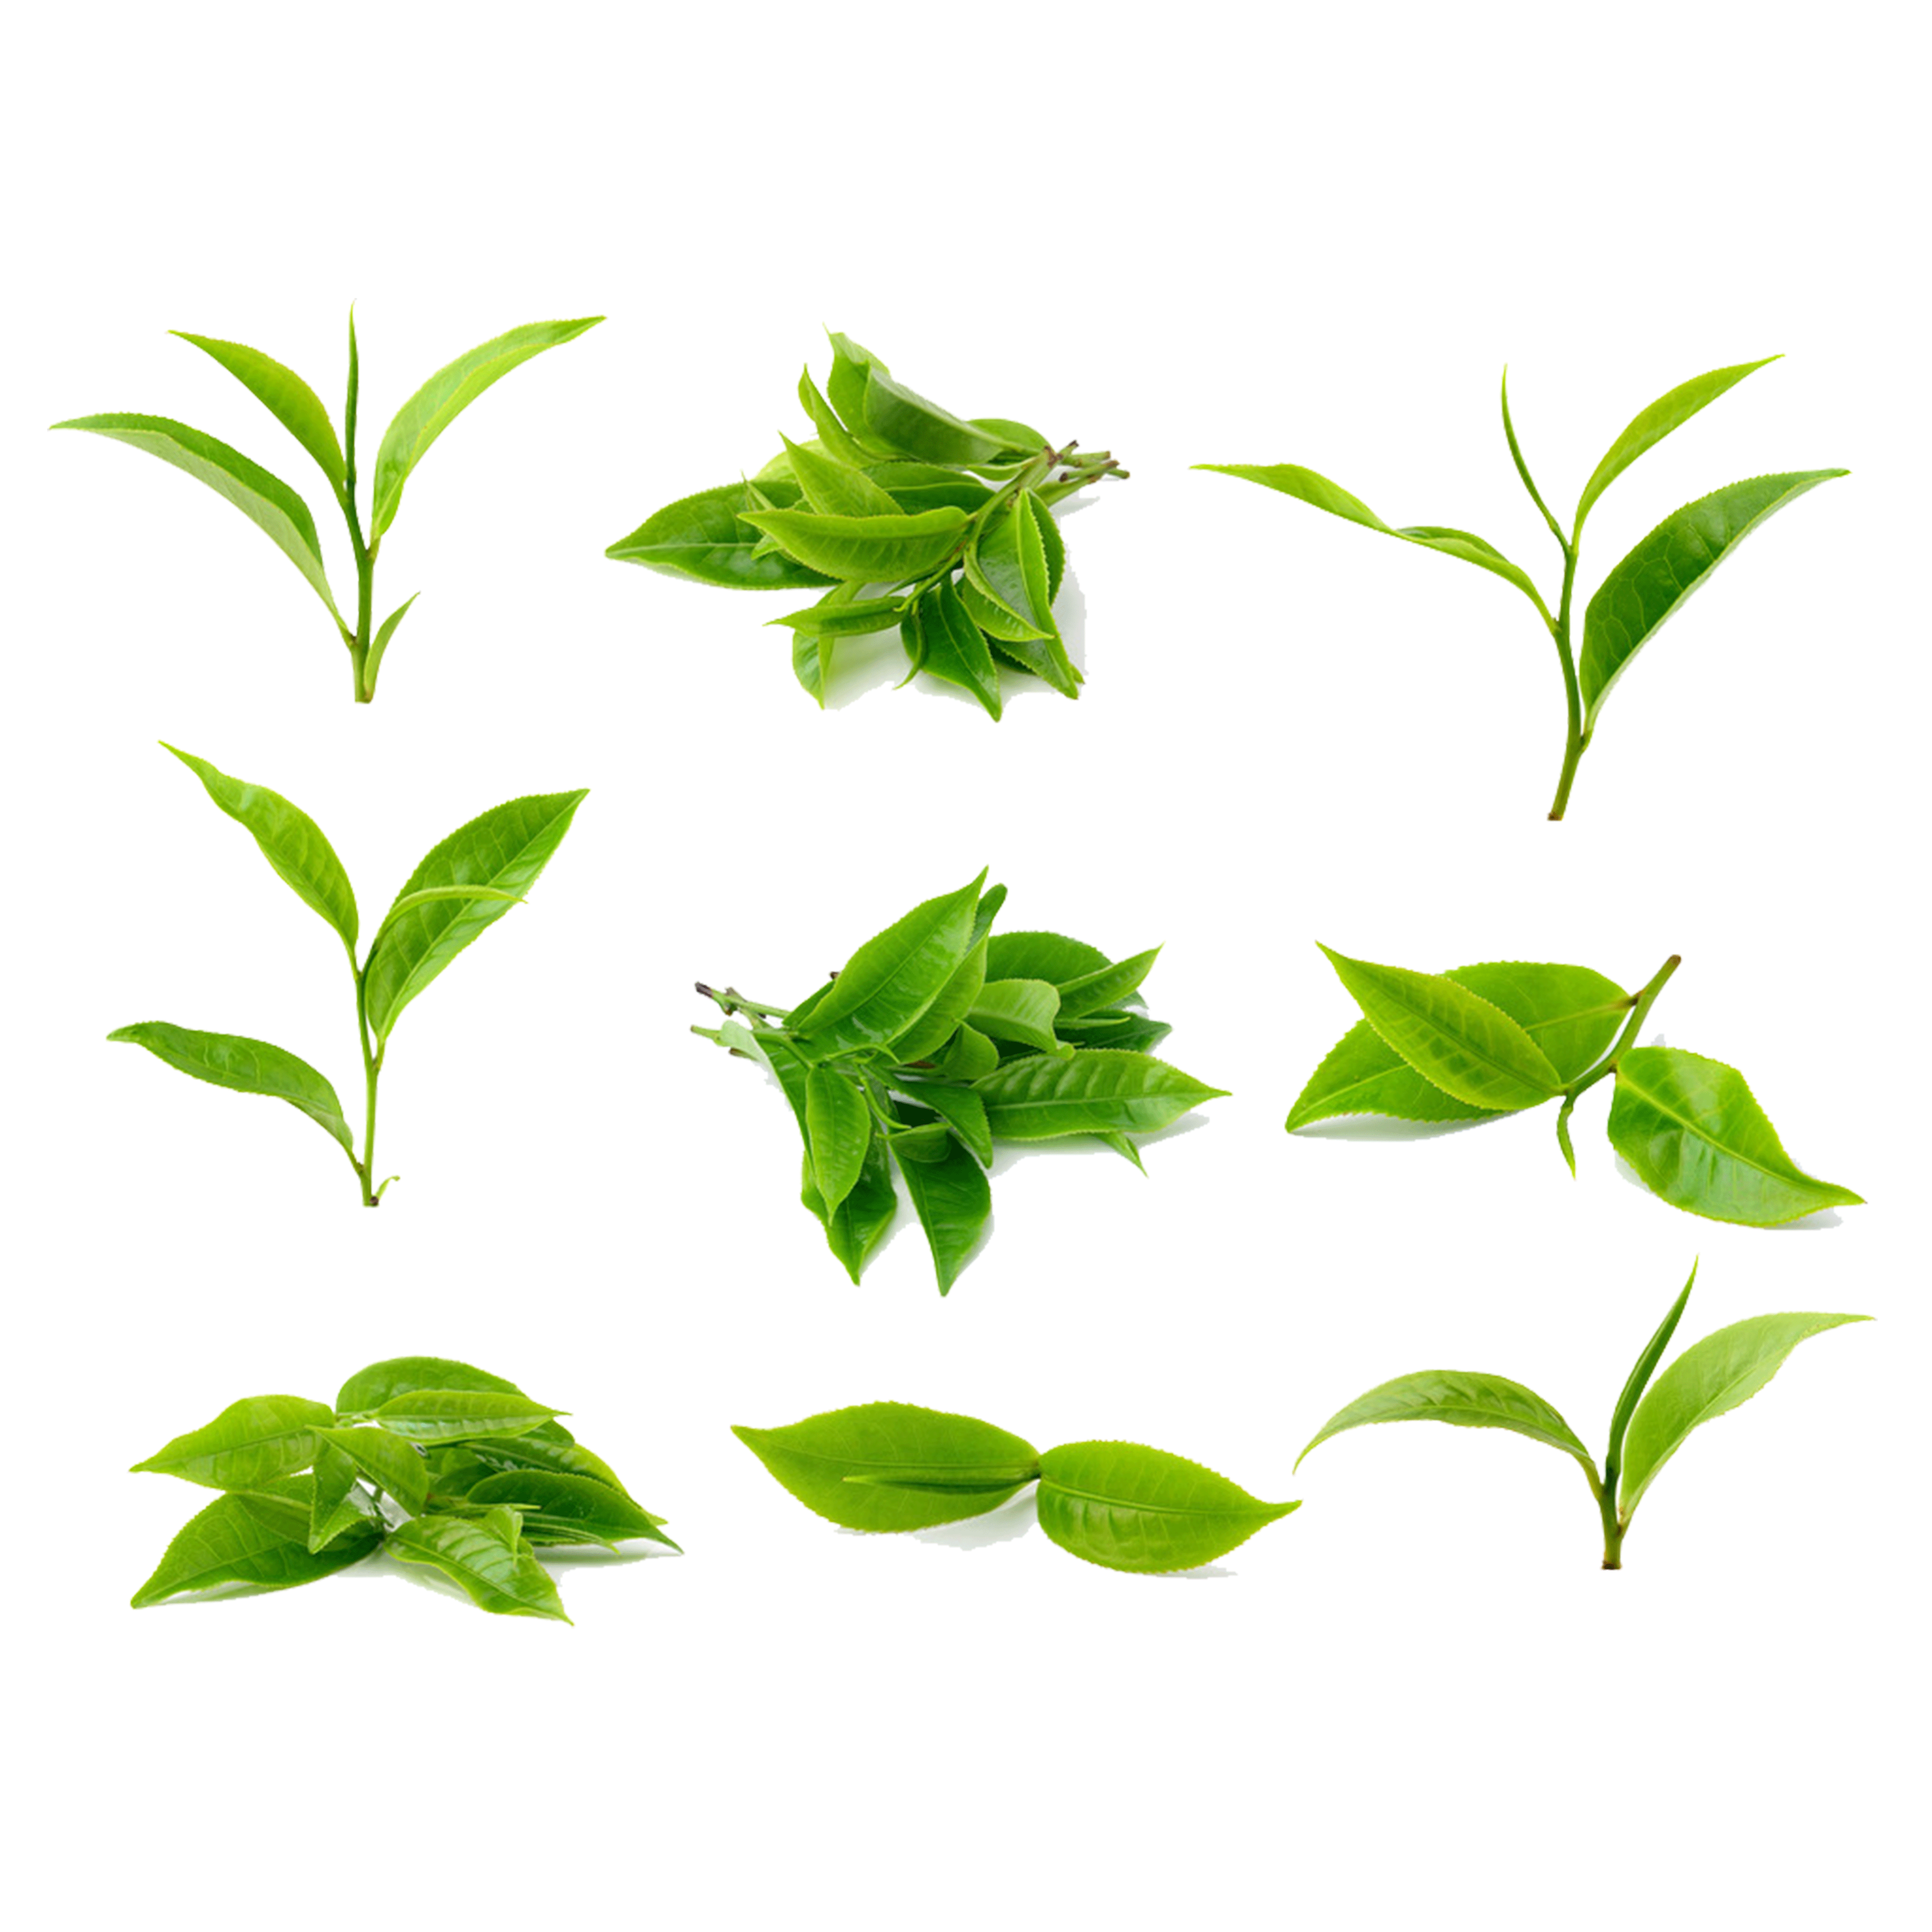 Tea clipart herbal leaf. Green stock photography processing